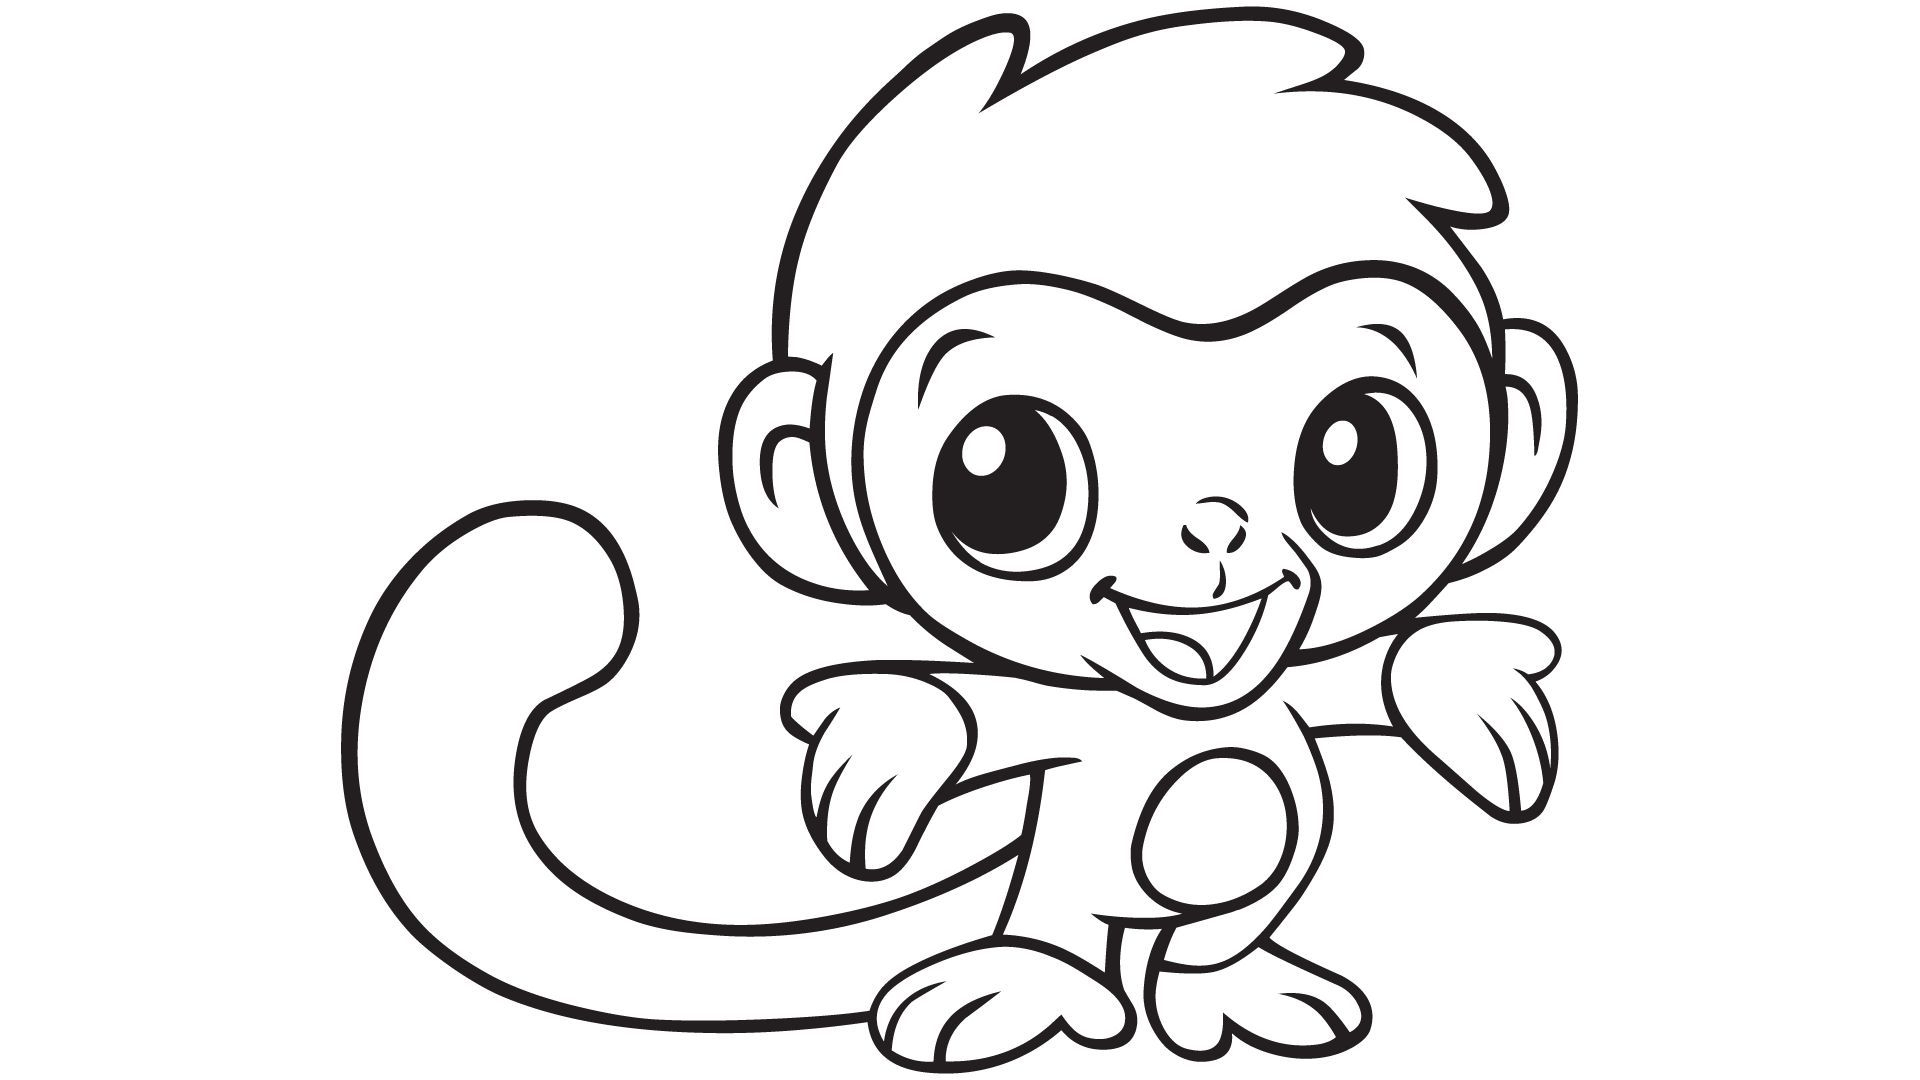 Baby Monkey Coloring Printable | E.v.a | Pinterest | Monkey Coloring - Free Printable Monkey Coloring Sheets